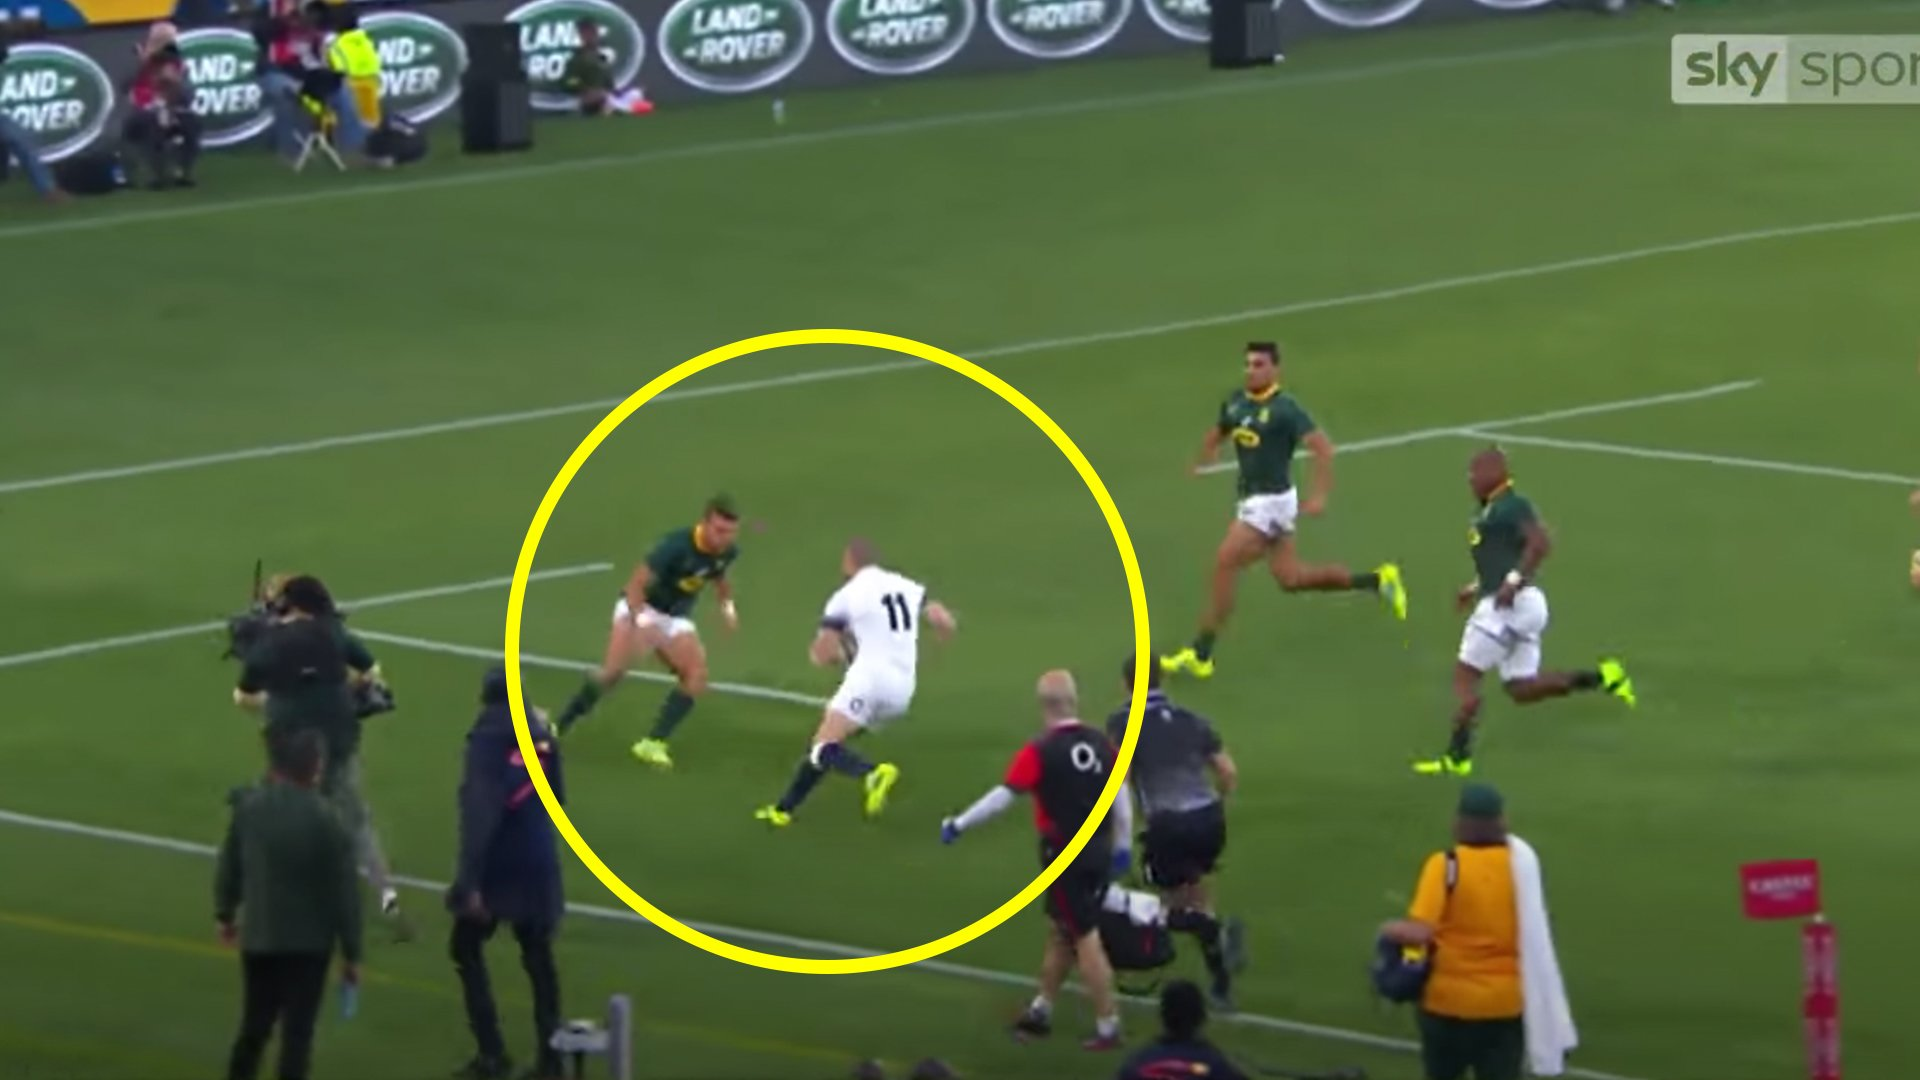 The Mike Brown violation of Handre Pollard which makes Kolbe on Farrell look like child's play